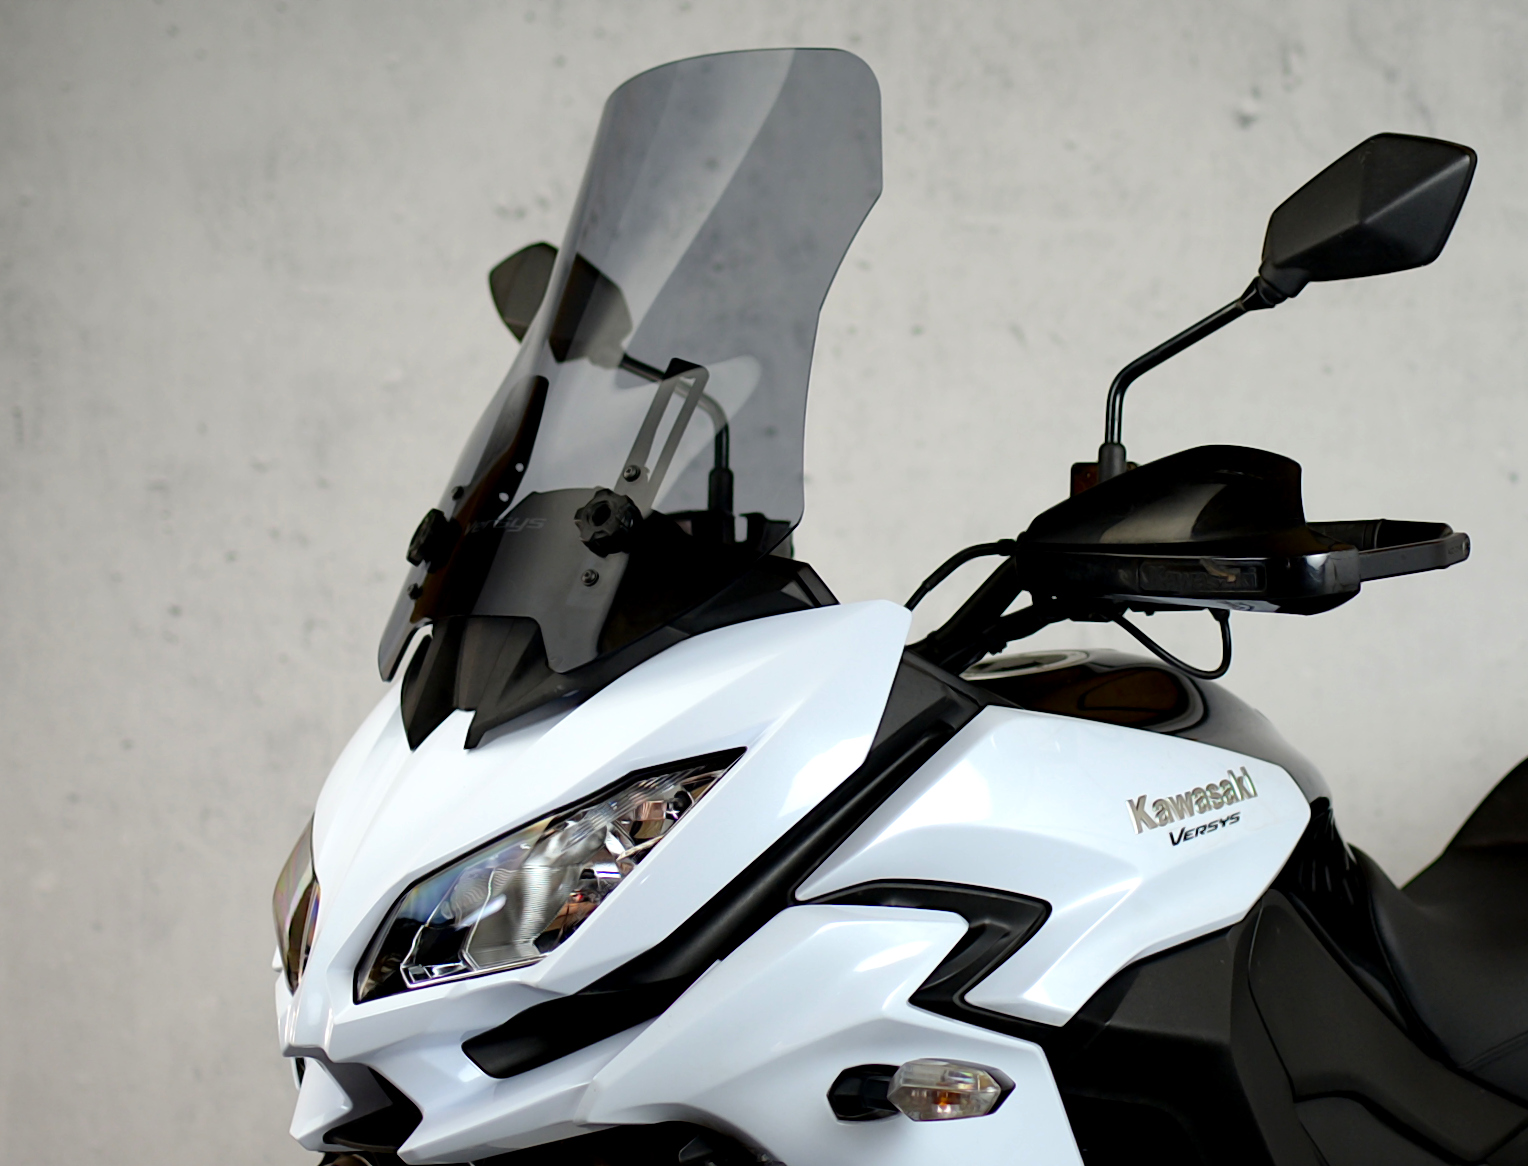 4b40056f01b Details about TOURING SCREEN WINDSHIELD SCHEIBE KAWASAKI KLE 650 VERSYS  2017-2019 4 COLORS